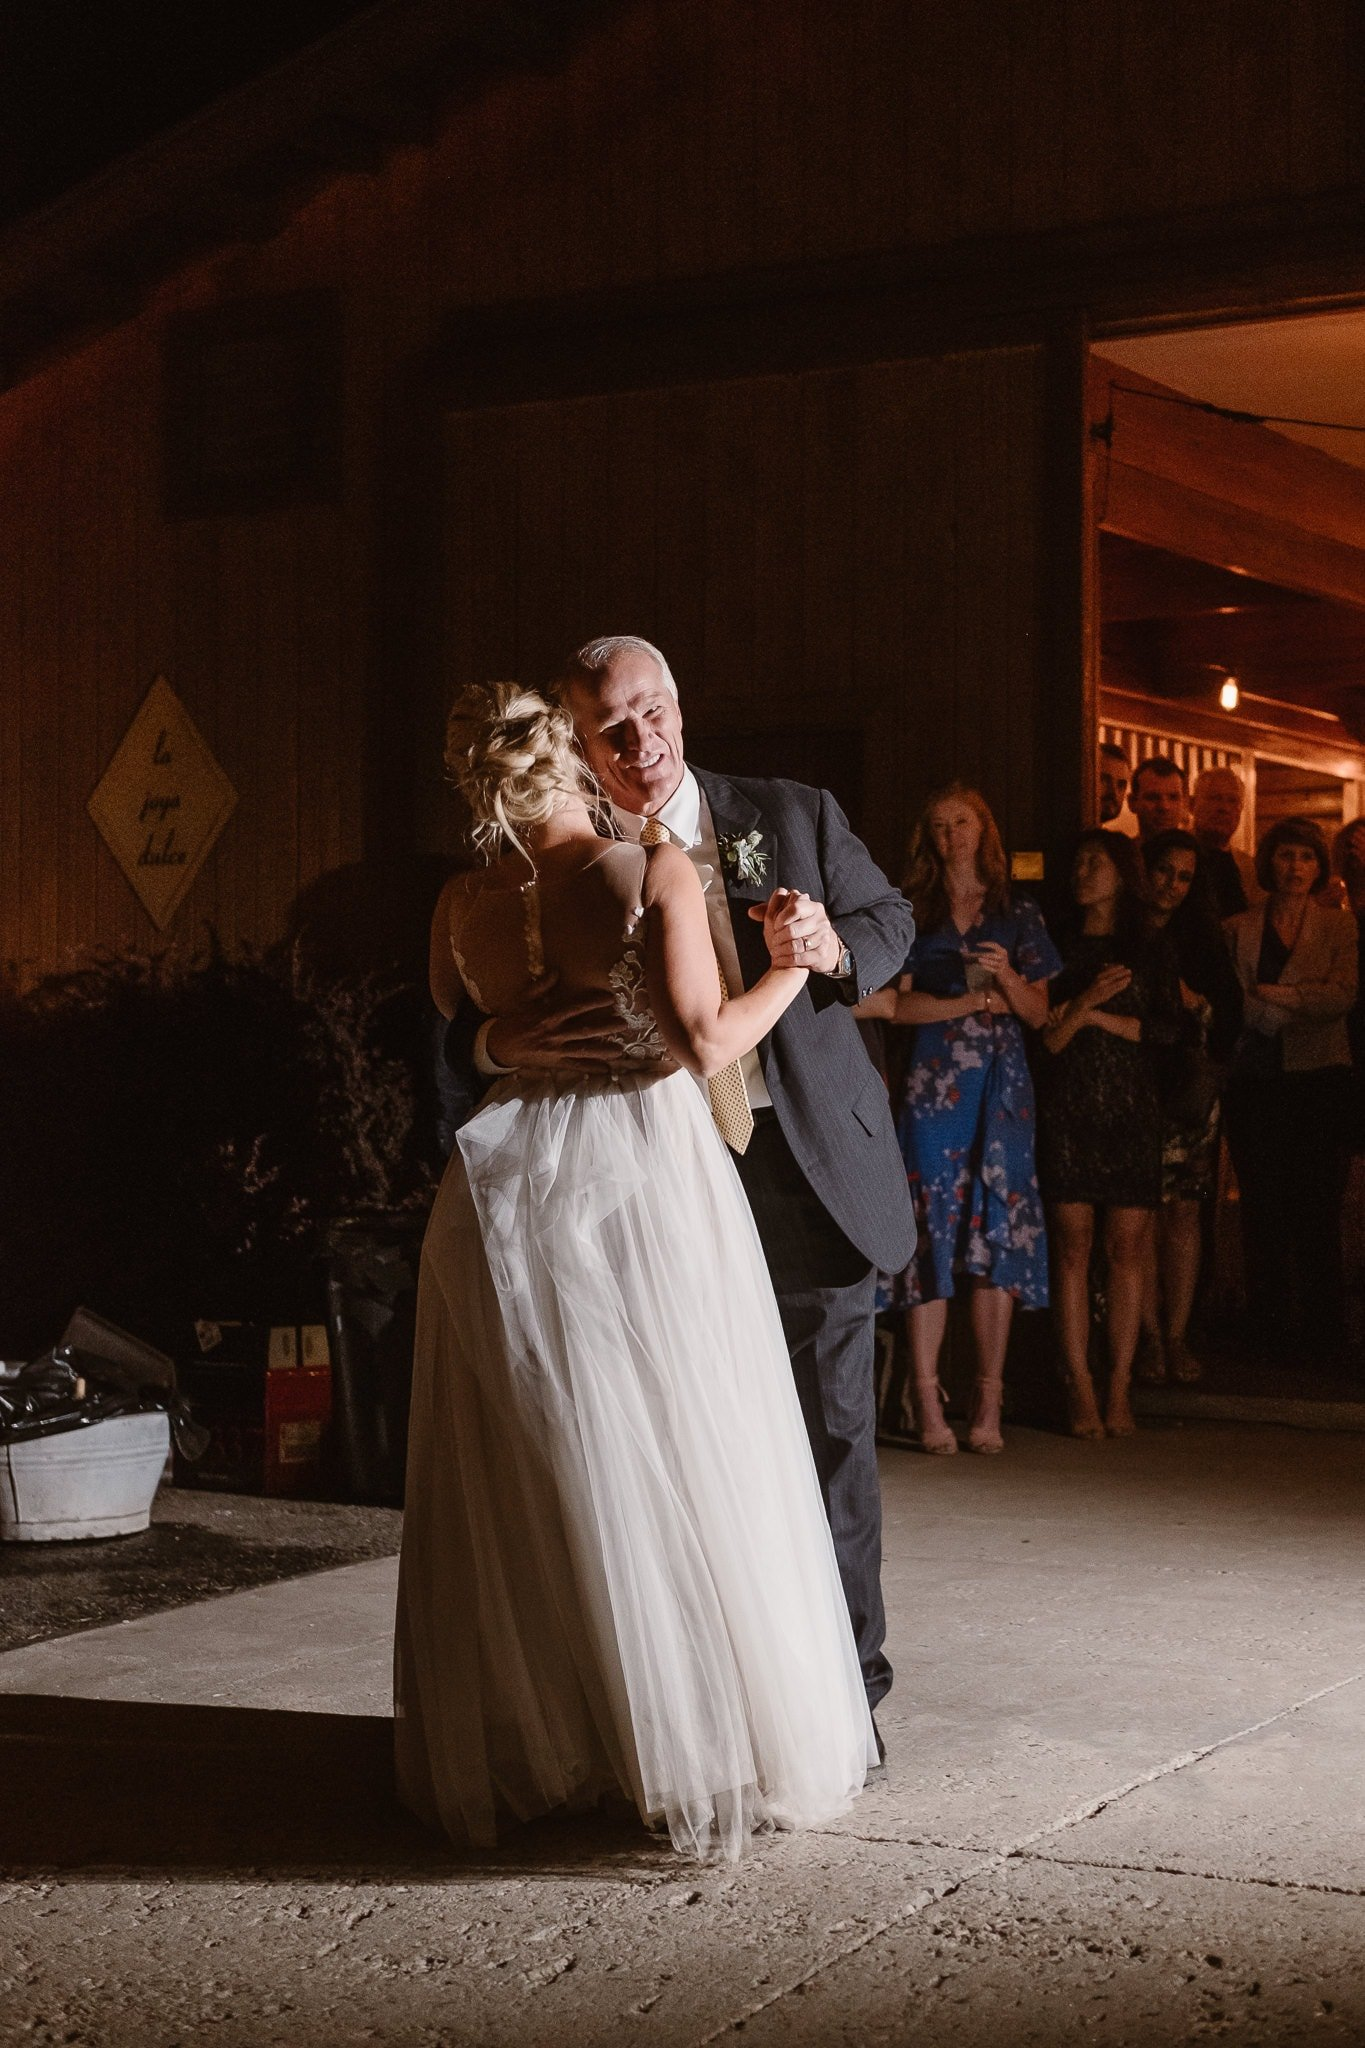 Steamboat Springs wedding photographer, La Joya Dulce wedding, Colorado ranch wedding venues, bride and father dancing